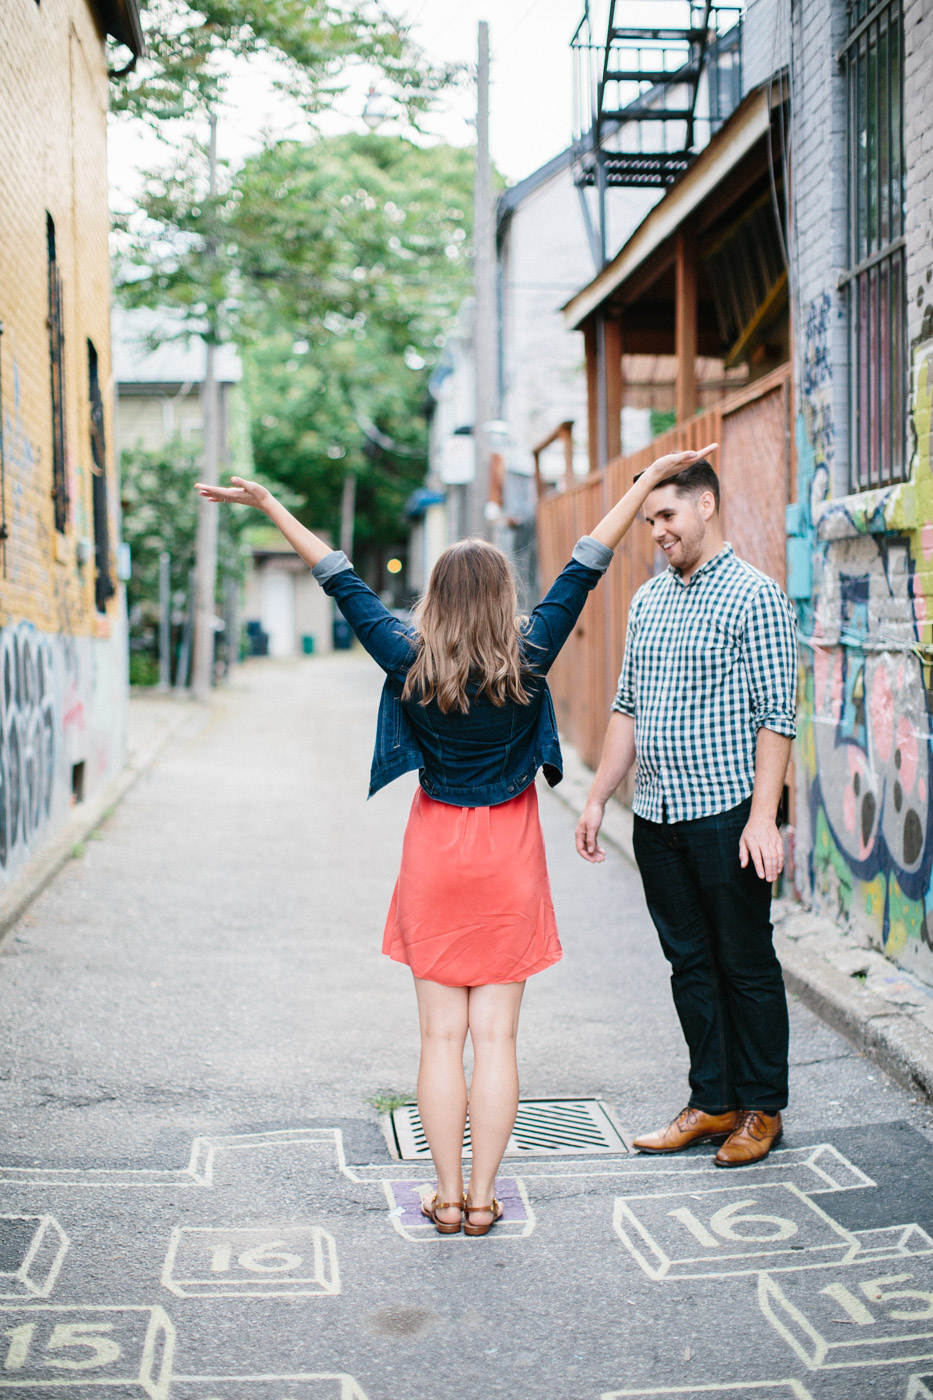 toronto_wedding_photographer_engagement_photography_tips-42.jpg